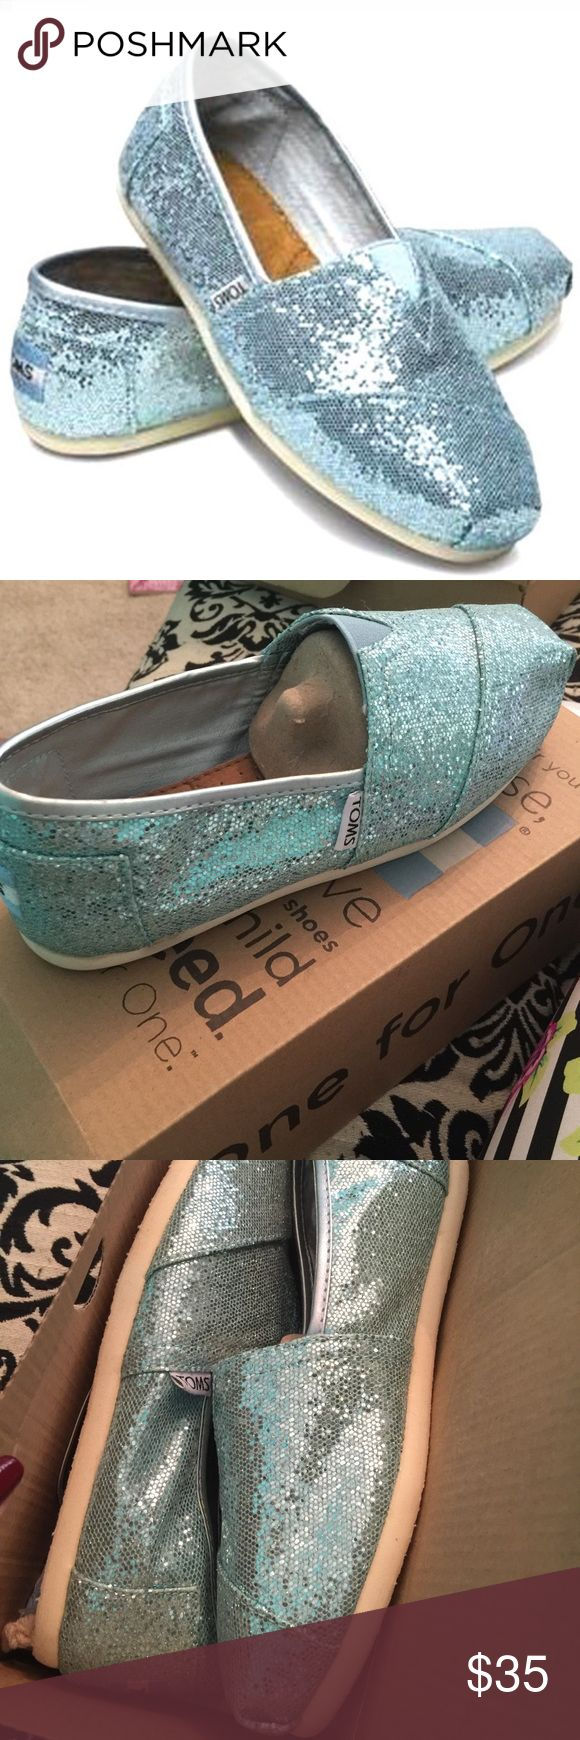 Brand New sparkly blue toms Brand new sparkly blue toms come in original box. TOMS Shoes Flats & Loafers